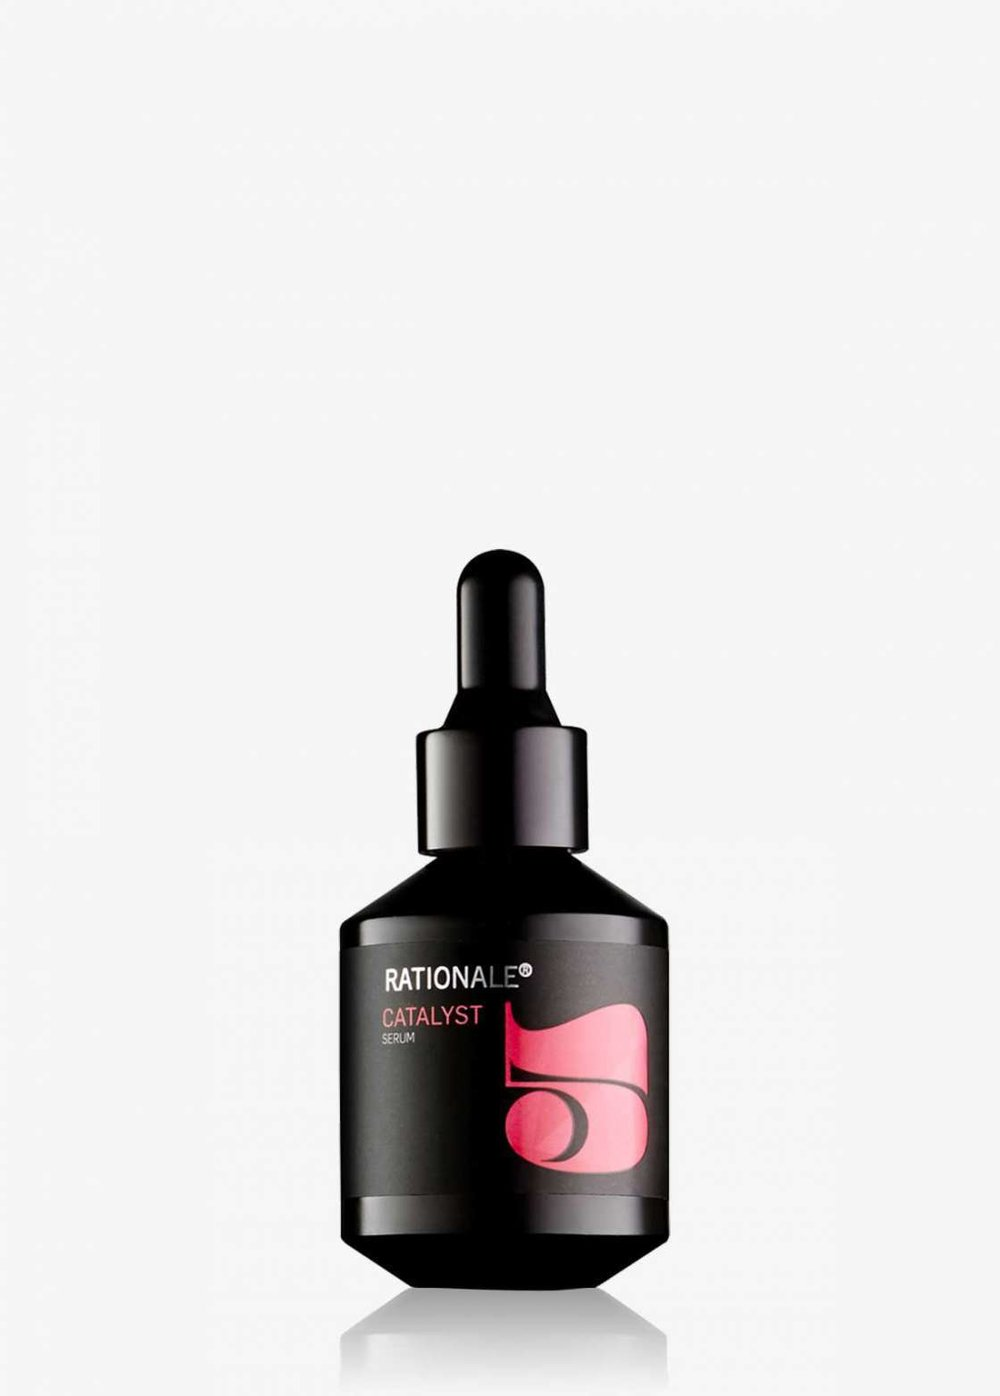 Reset Your Skin - Reset your skin pH with skin refining organic acids and enzymes every night to help clear pores, maintain optimal moisture levels and minimise acne-causing bacteria Rationale Catalyst Serum.